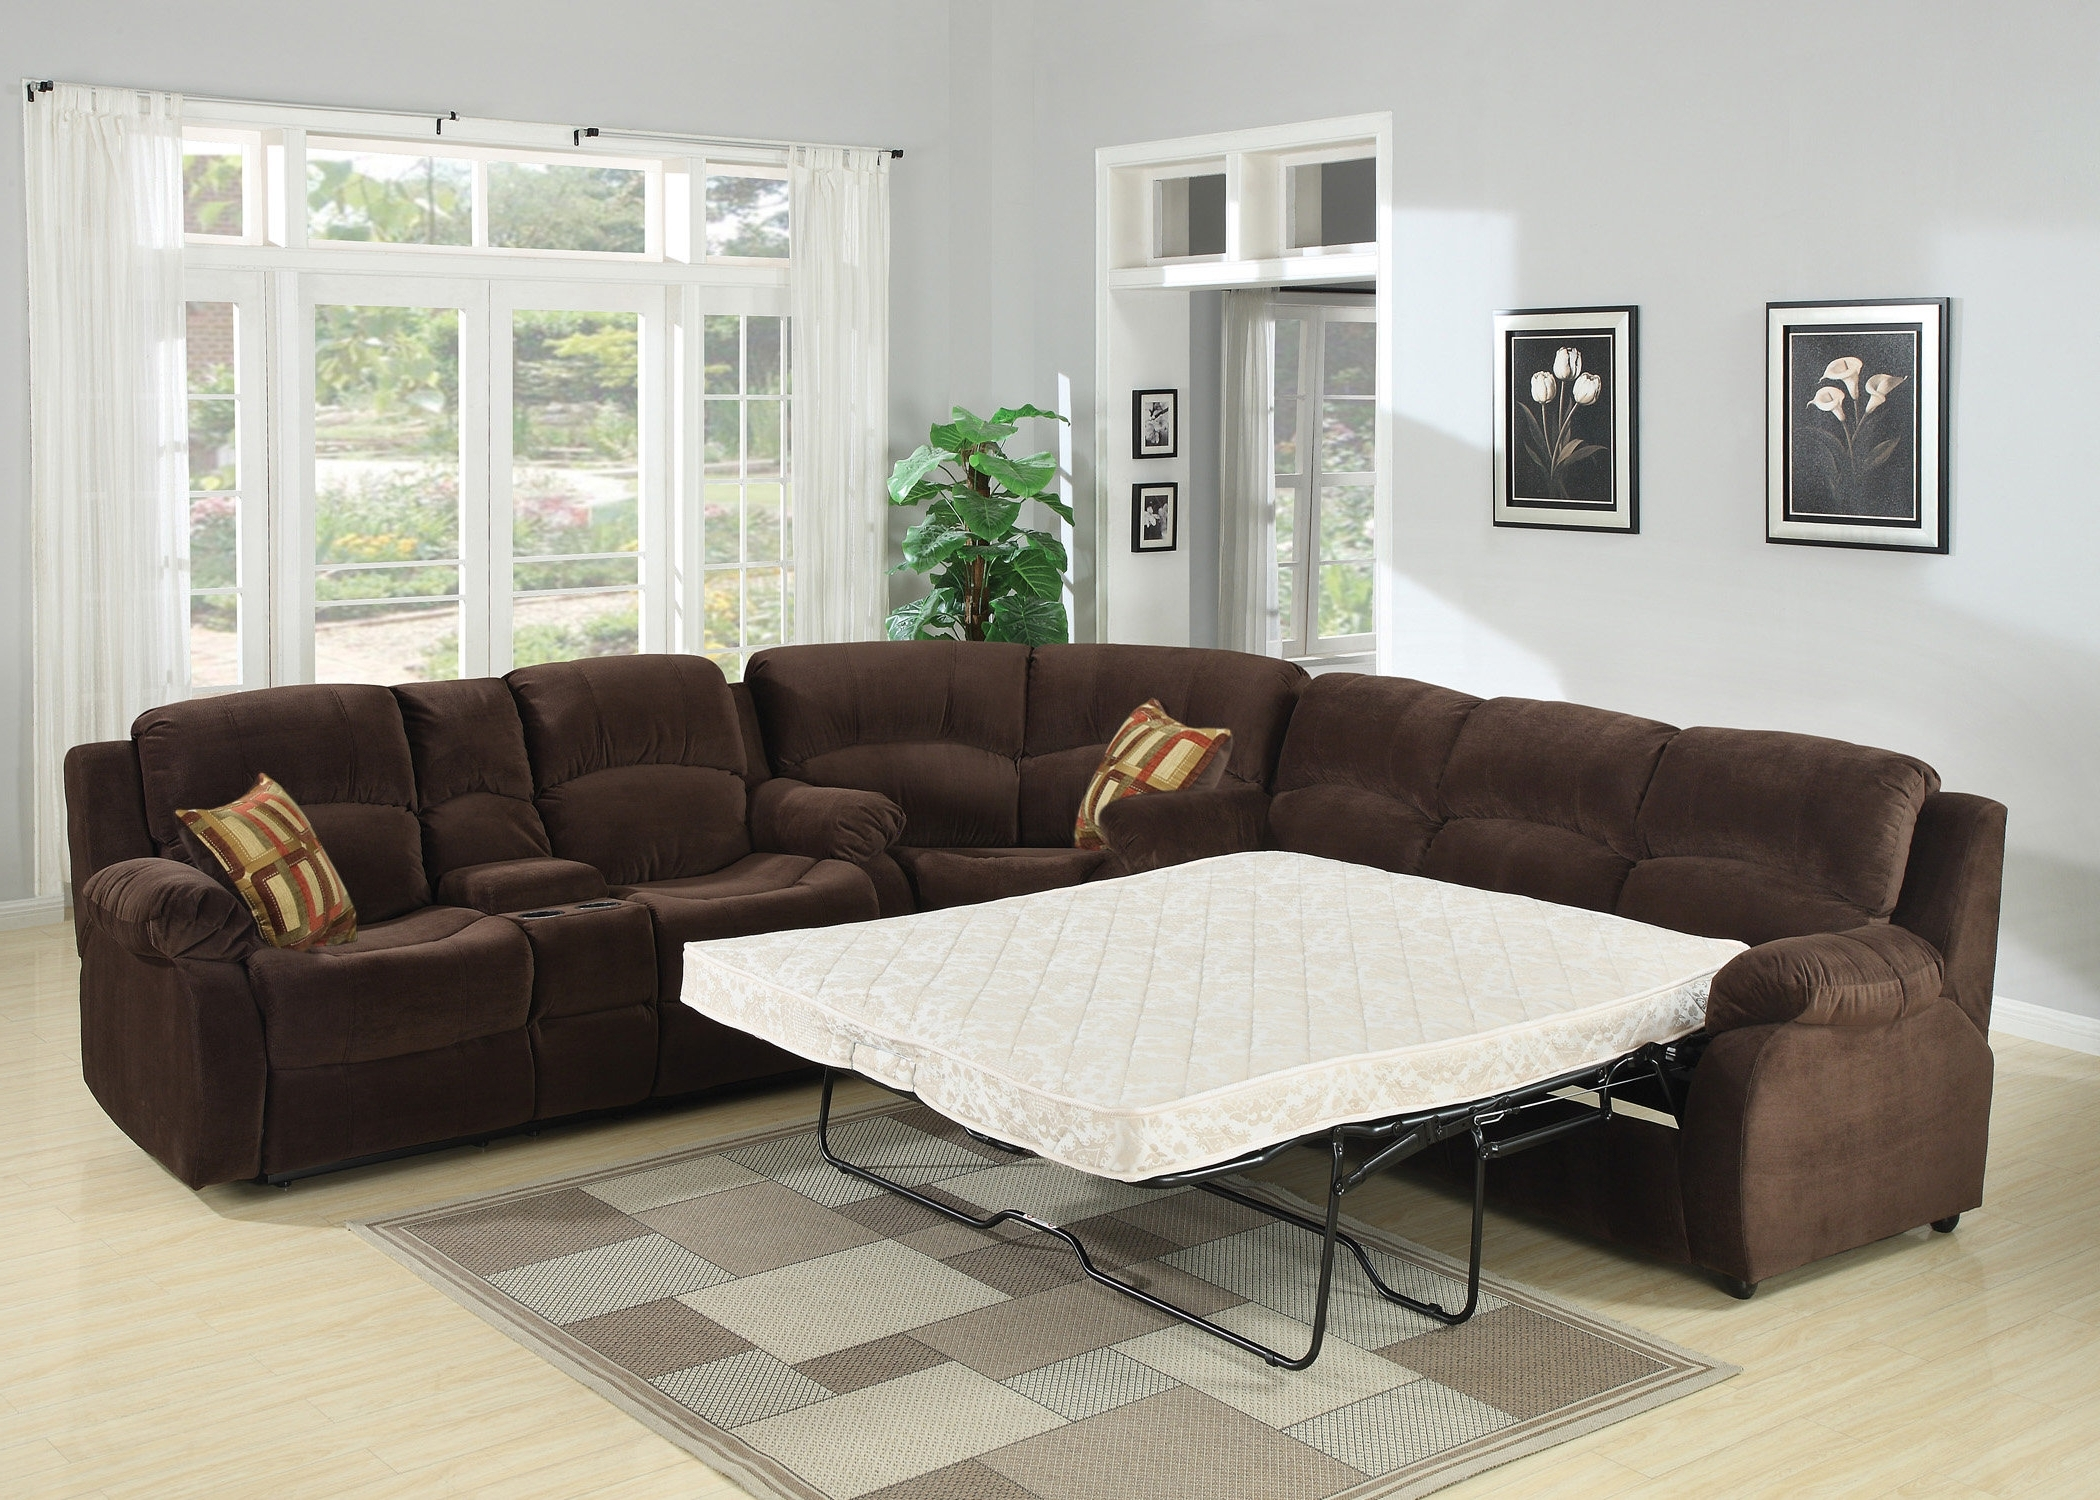 Adjustable Sectional Sofas With Queen Bed For Most Recent Sleeper Sectional Sofas You'll Love (View 8 of 15)